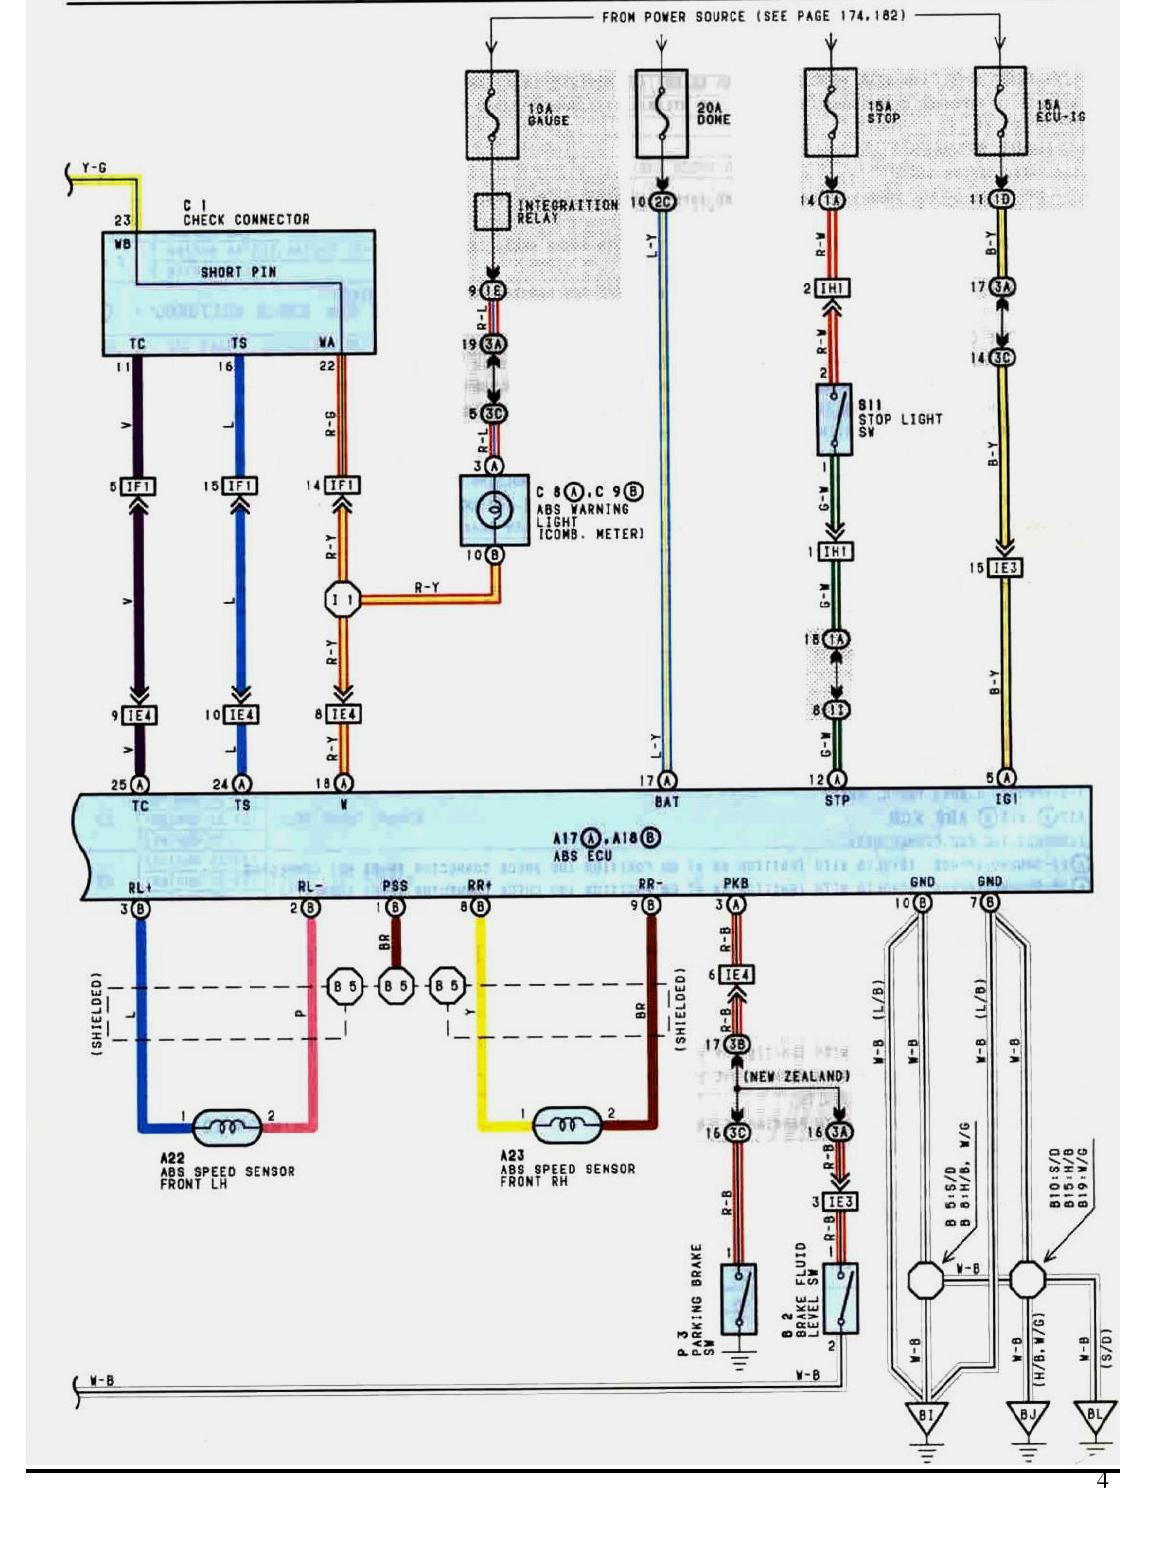 Range Rover P38 Wiring Diagram Electrical Diagrams Fuse Box Seat Find U2022 Land Discovery 2